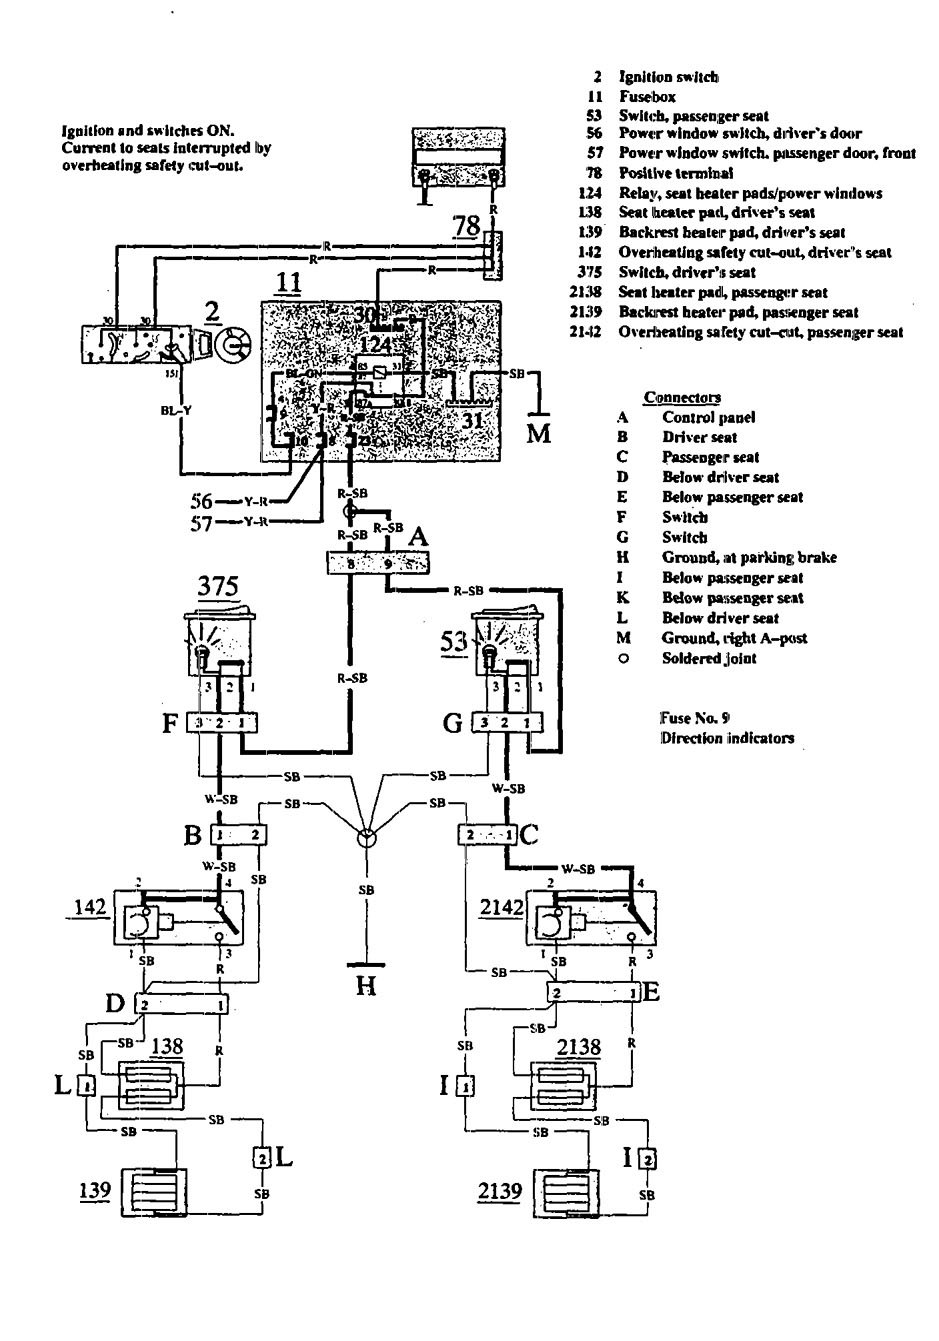 2002 jeep grand cherokee heated seat wiring diagram   51